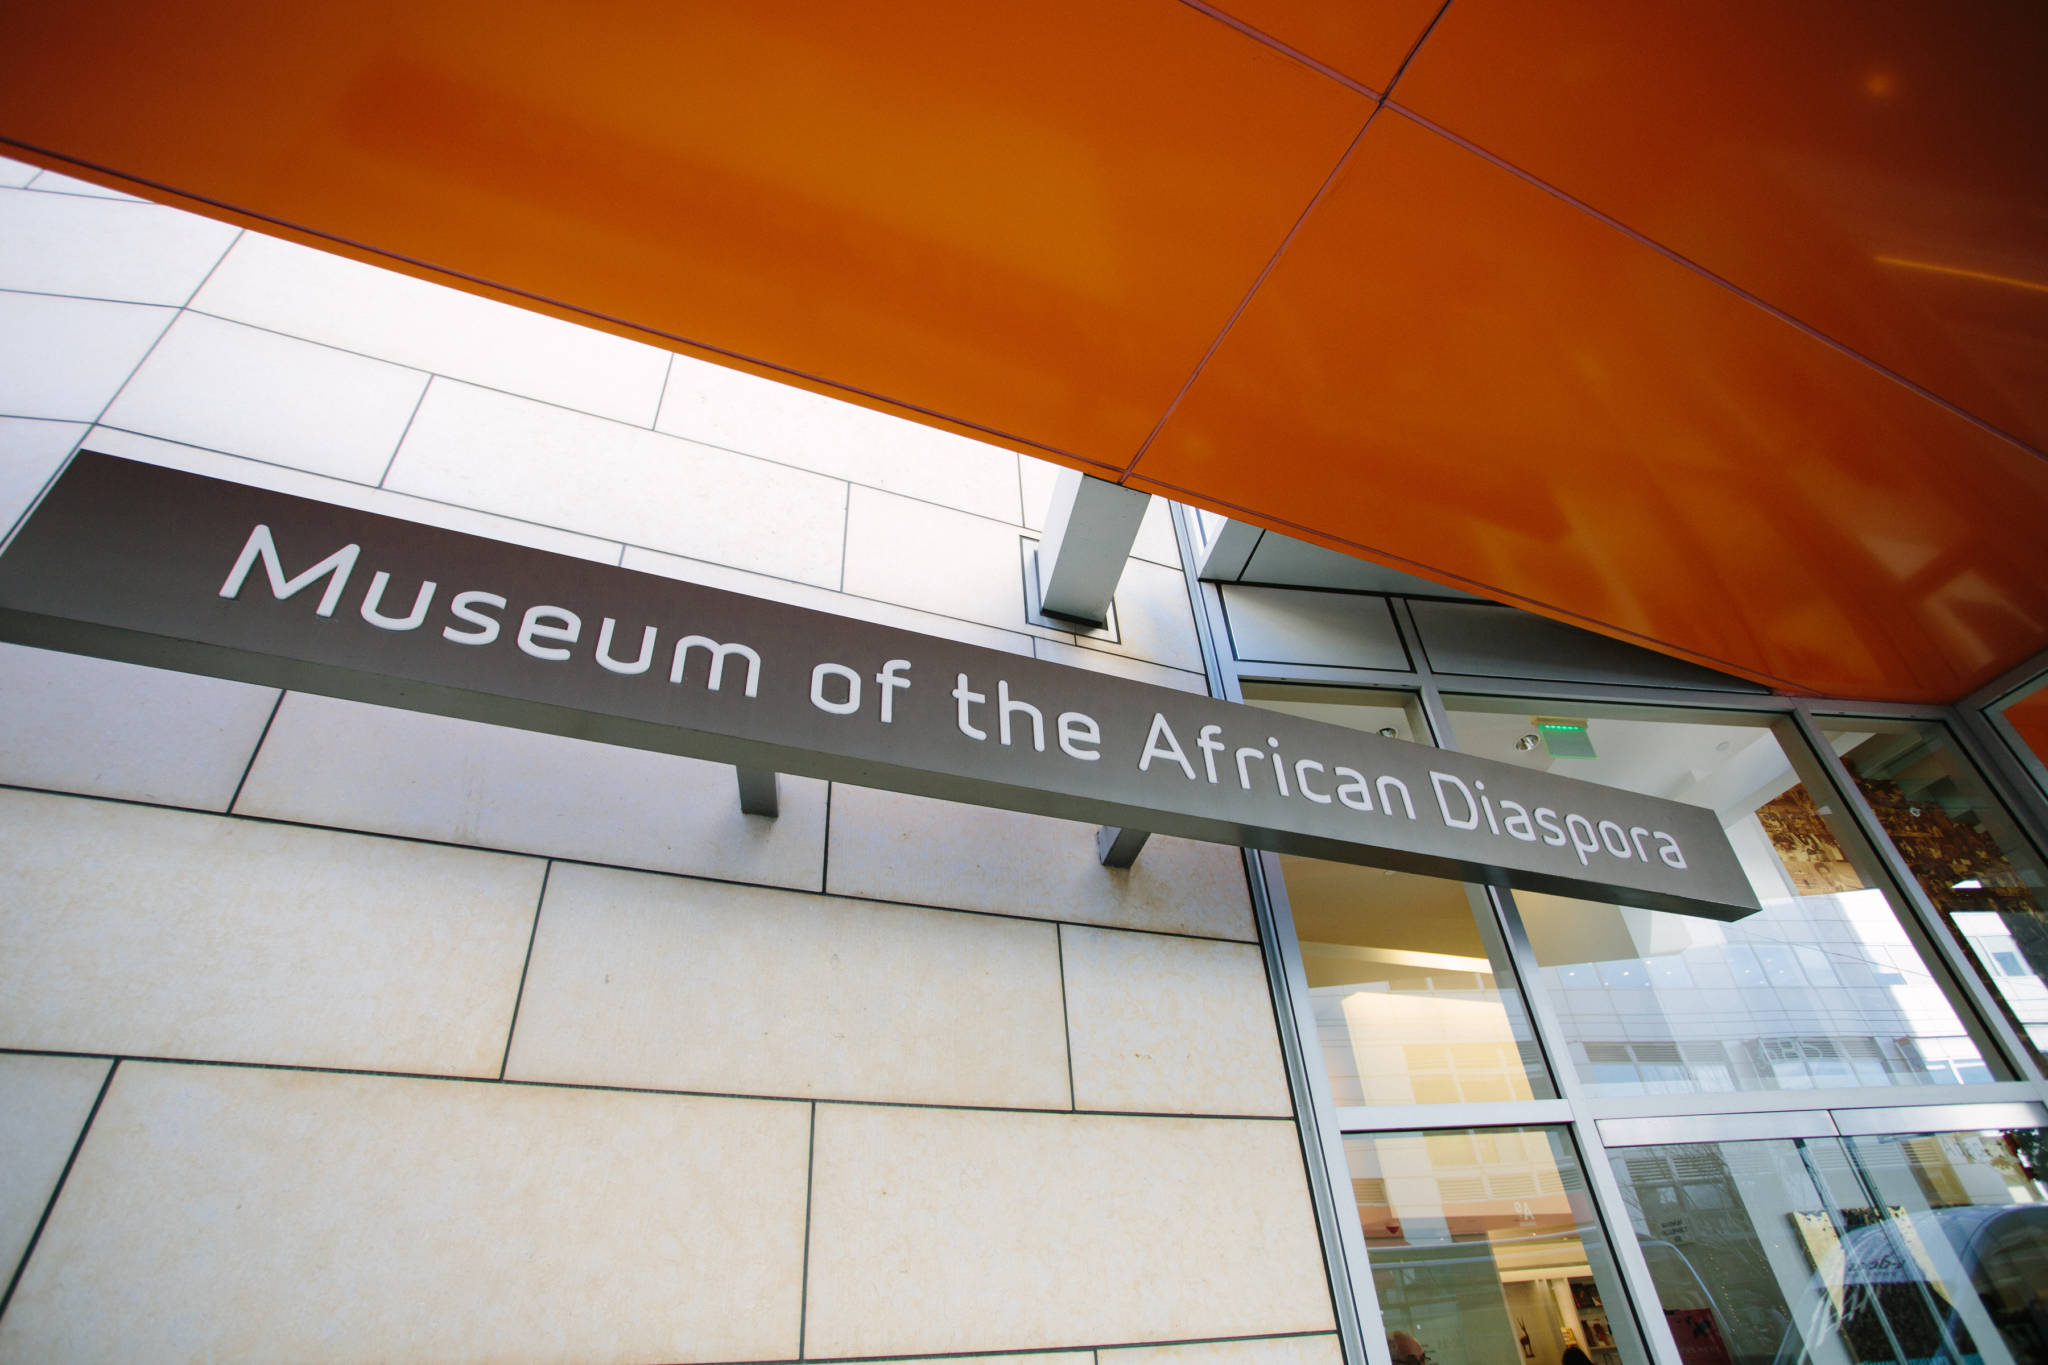 Free Entry to SFMOMA, MoAD and Other Museums on Third Thursday